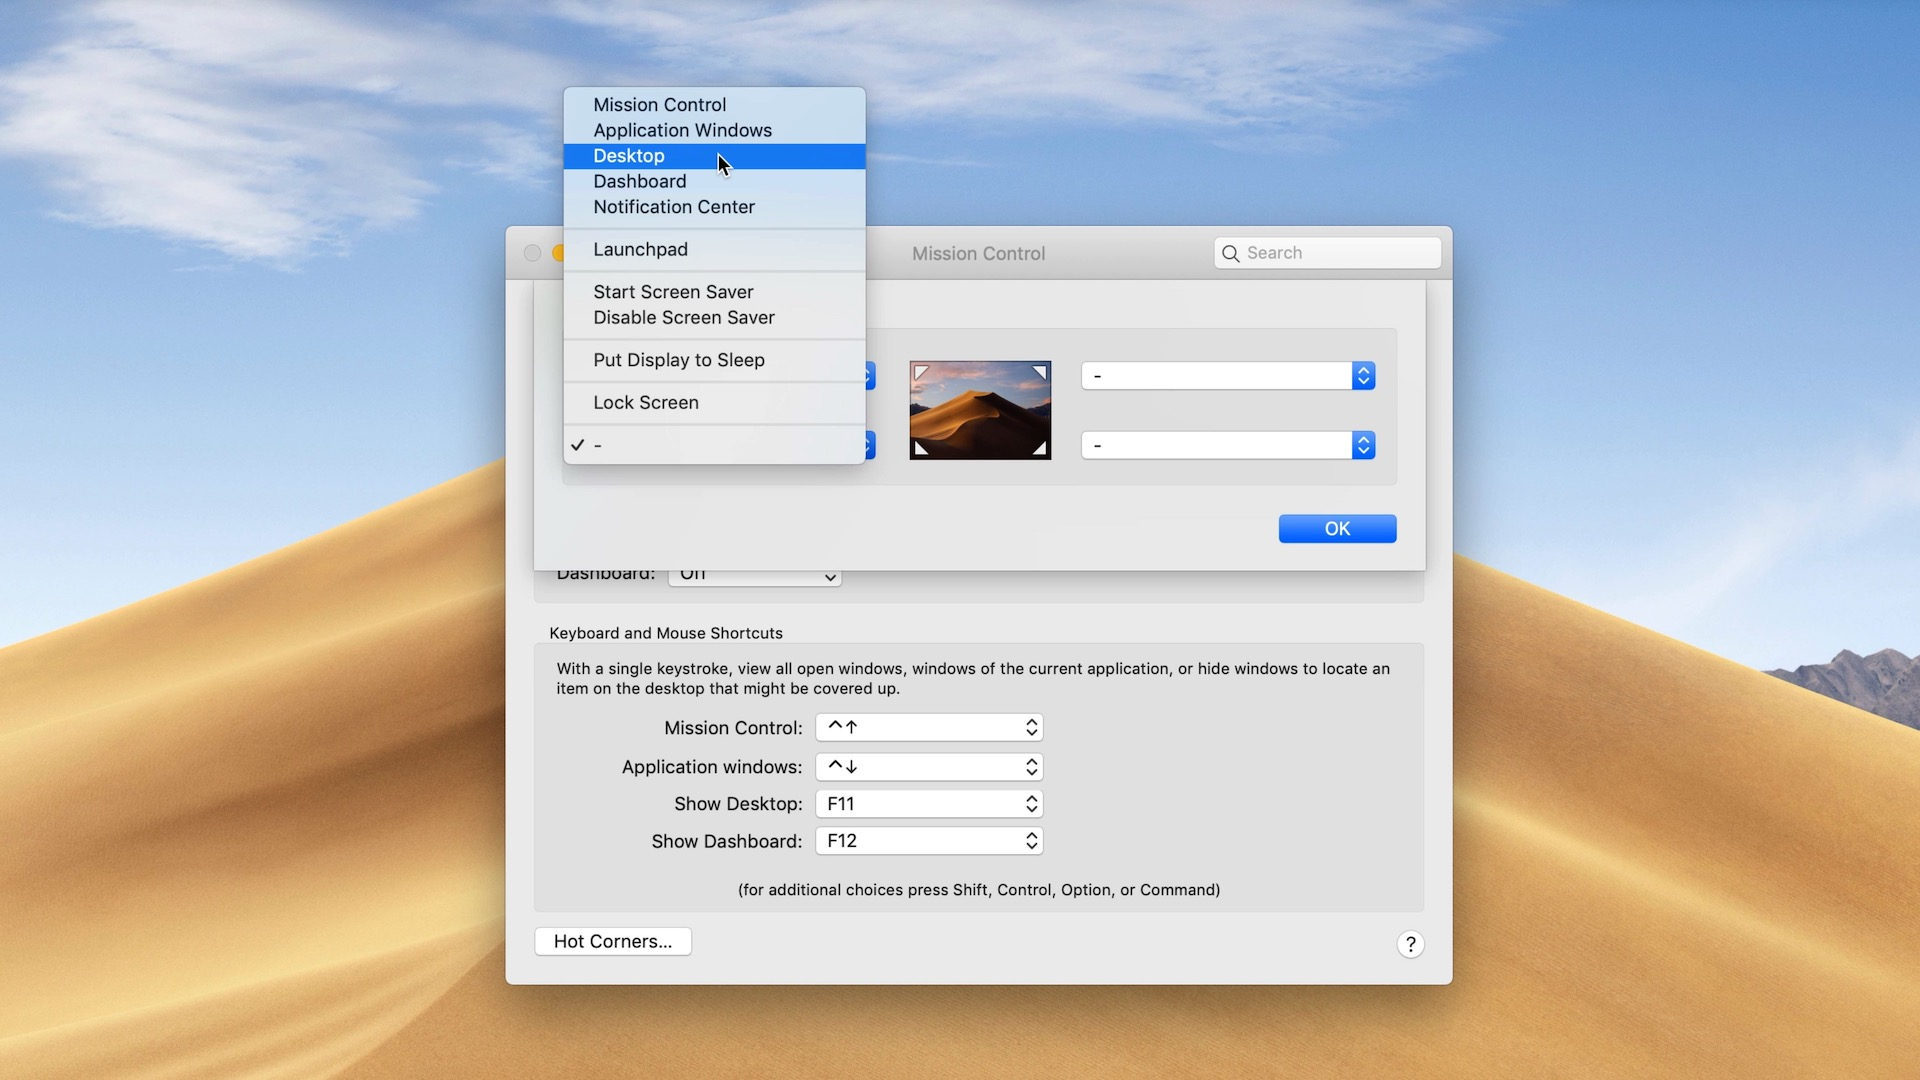 Enable hot corner in macOS